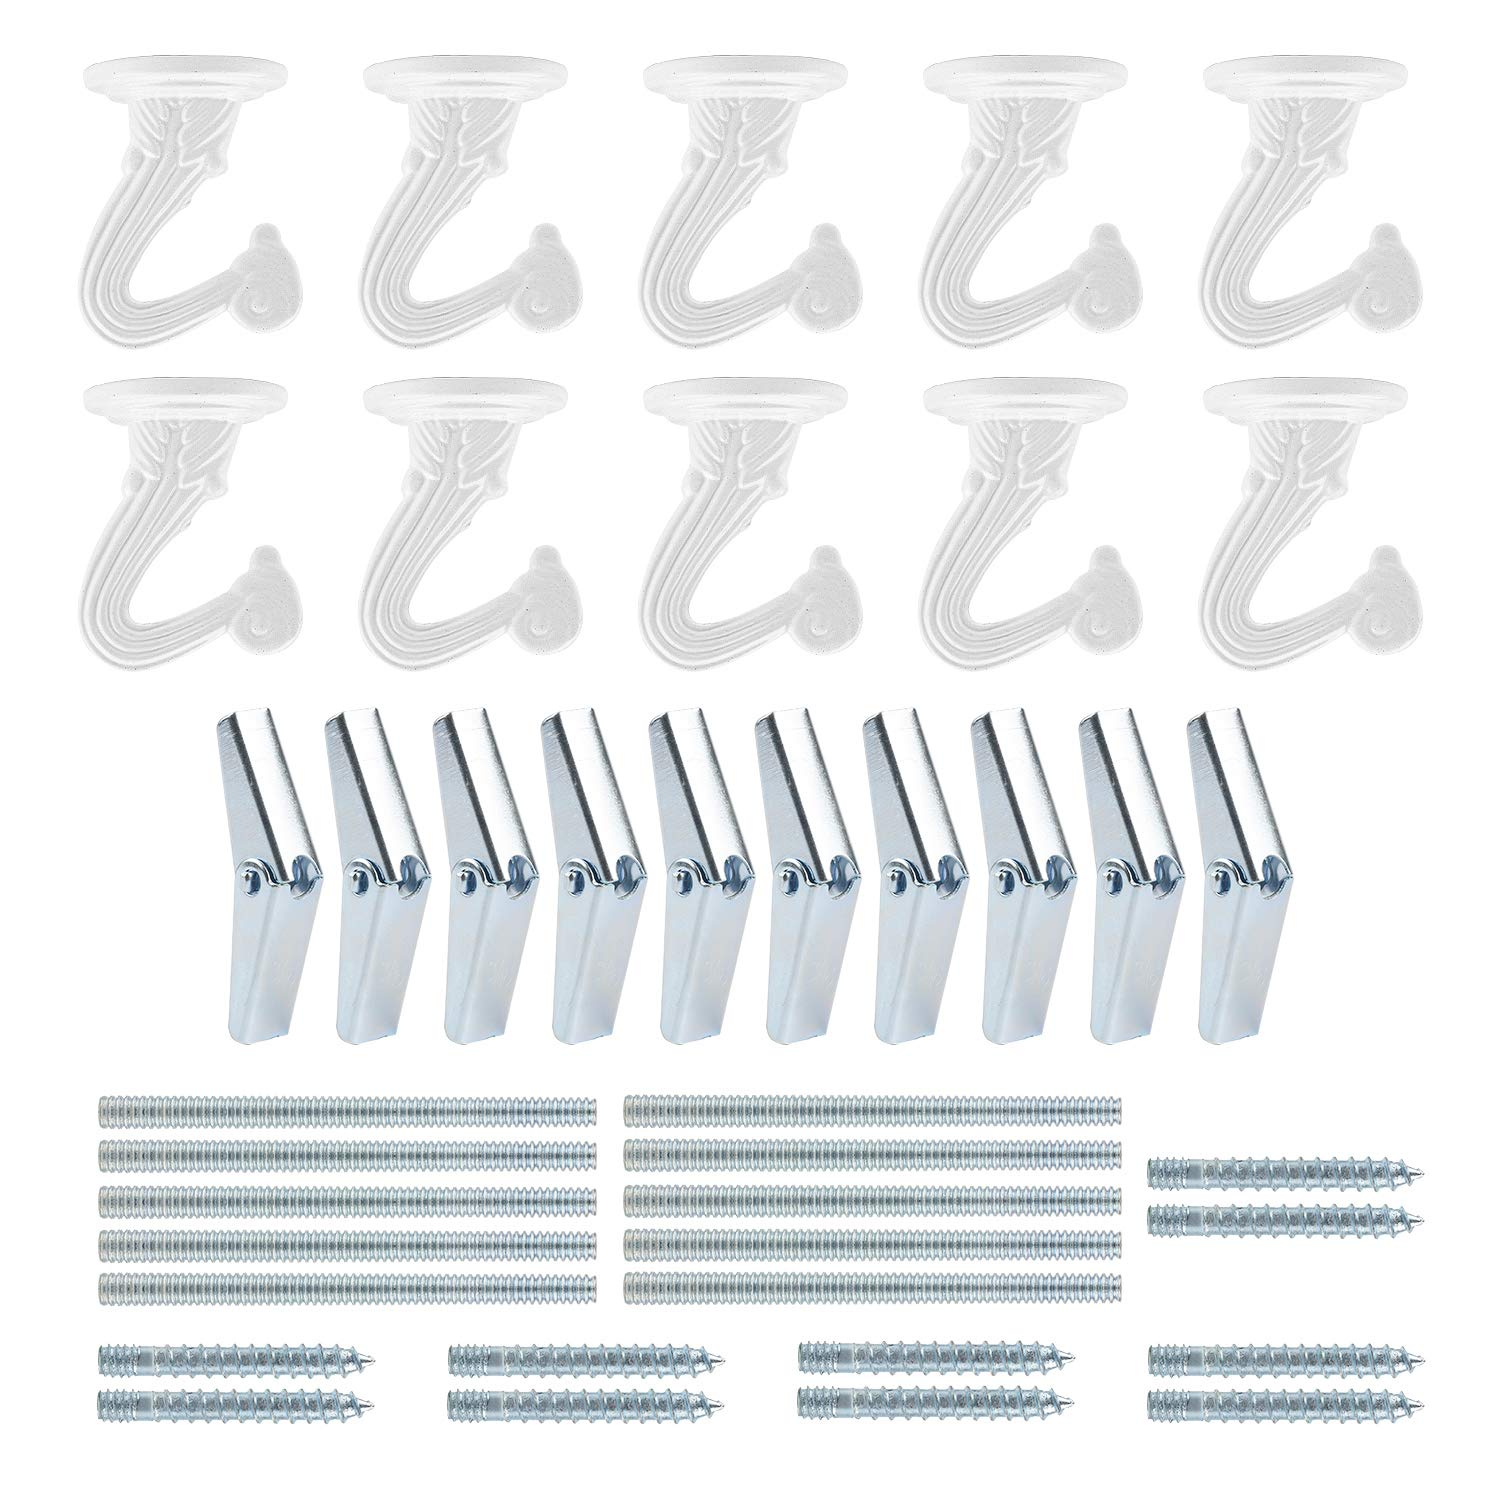 10 Sets Ceiling Hooks - Heavy Duty Swag Hook with Steel Screws Bolts and Toggle Wings for Hanging Plants Ceiling Installation Cavity Wall Fixing White